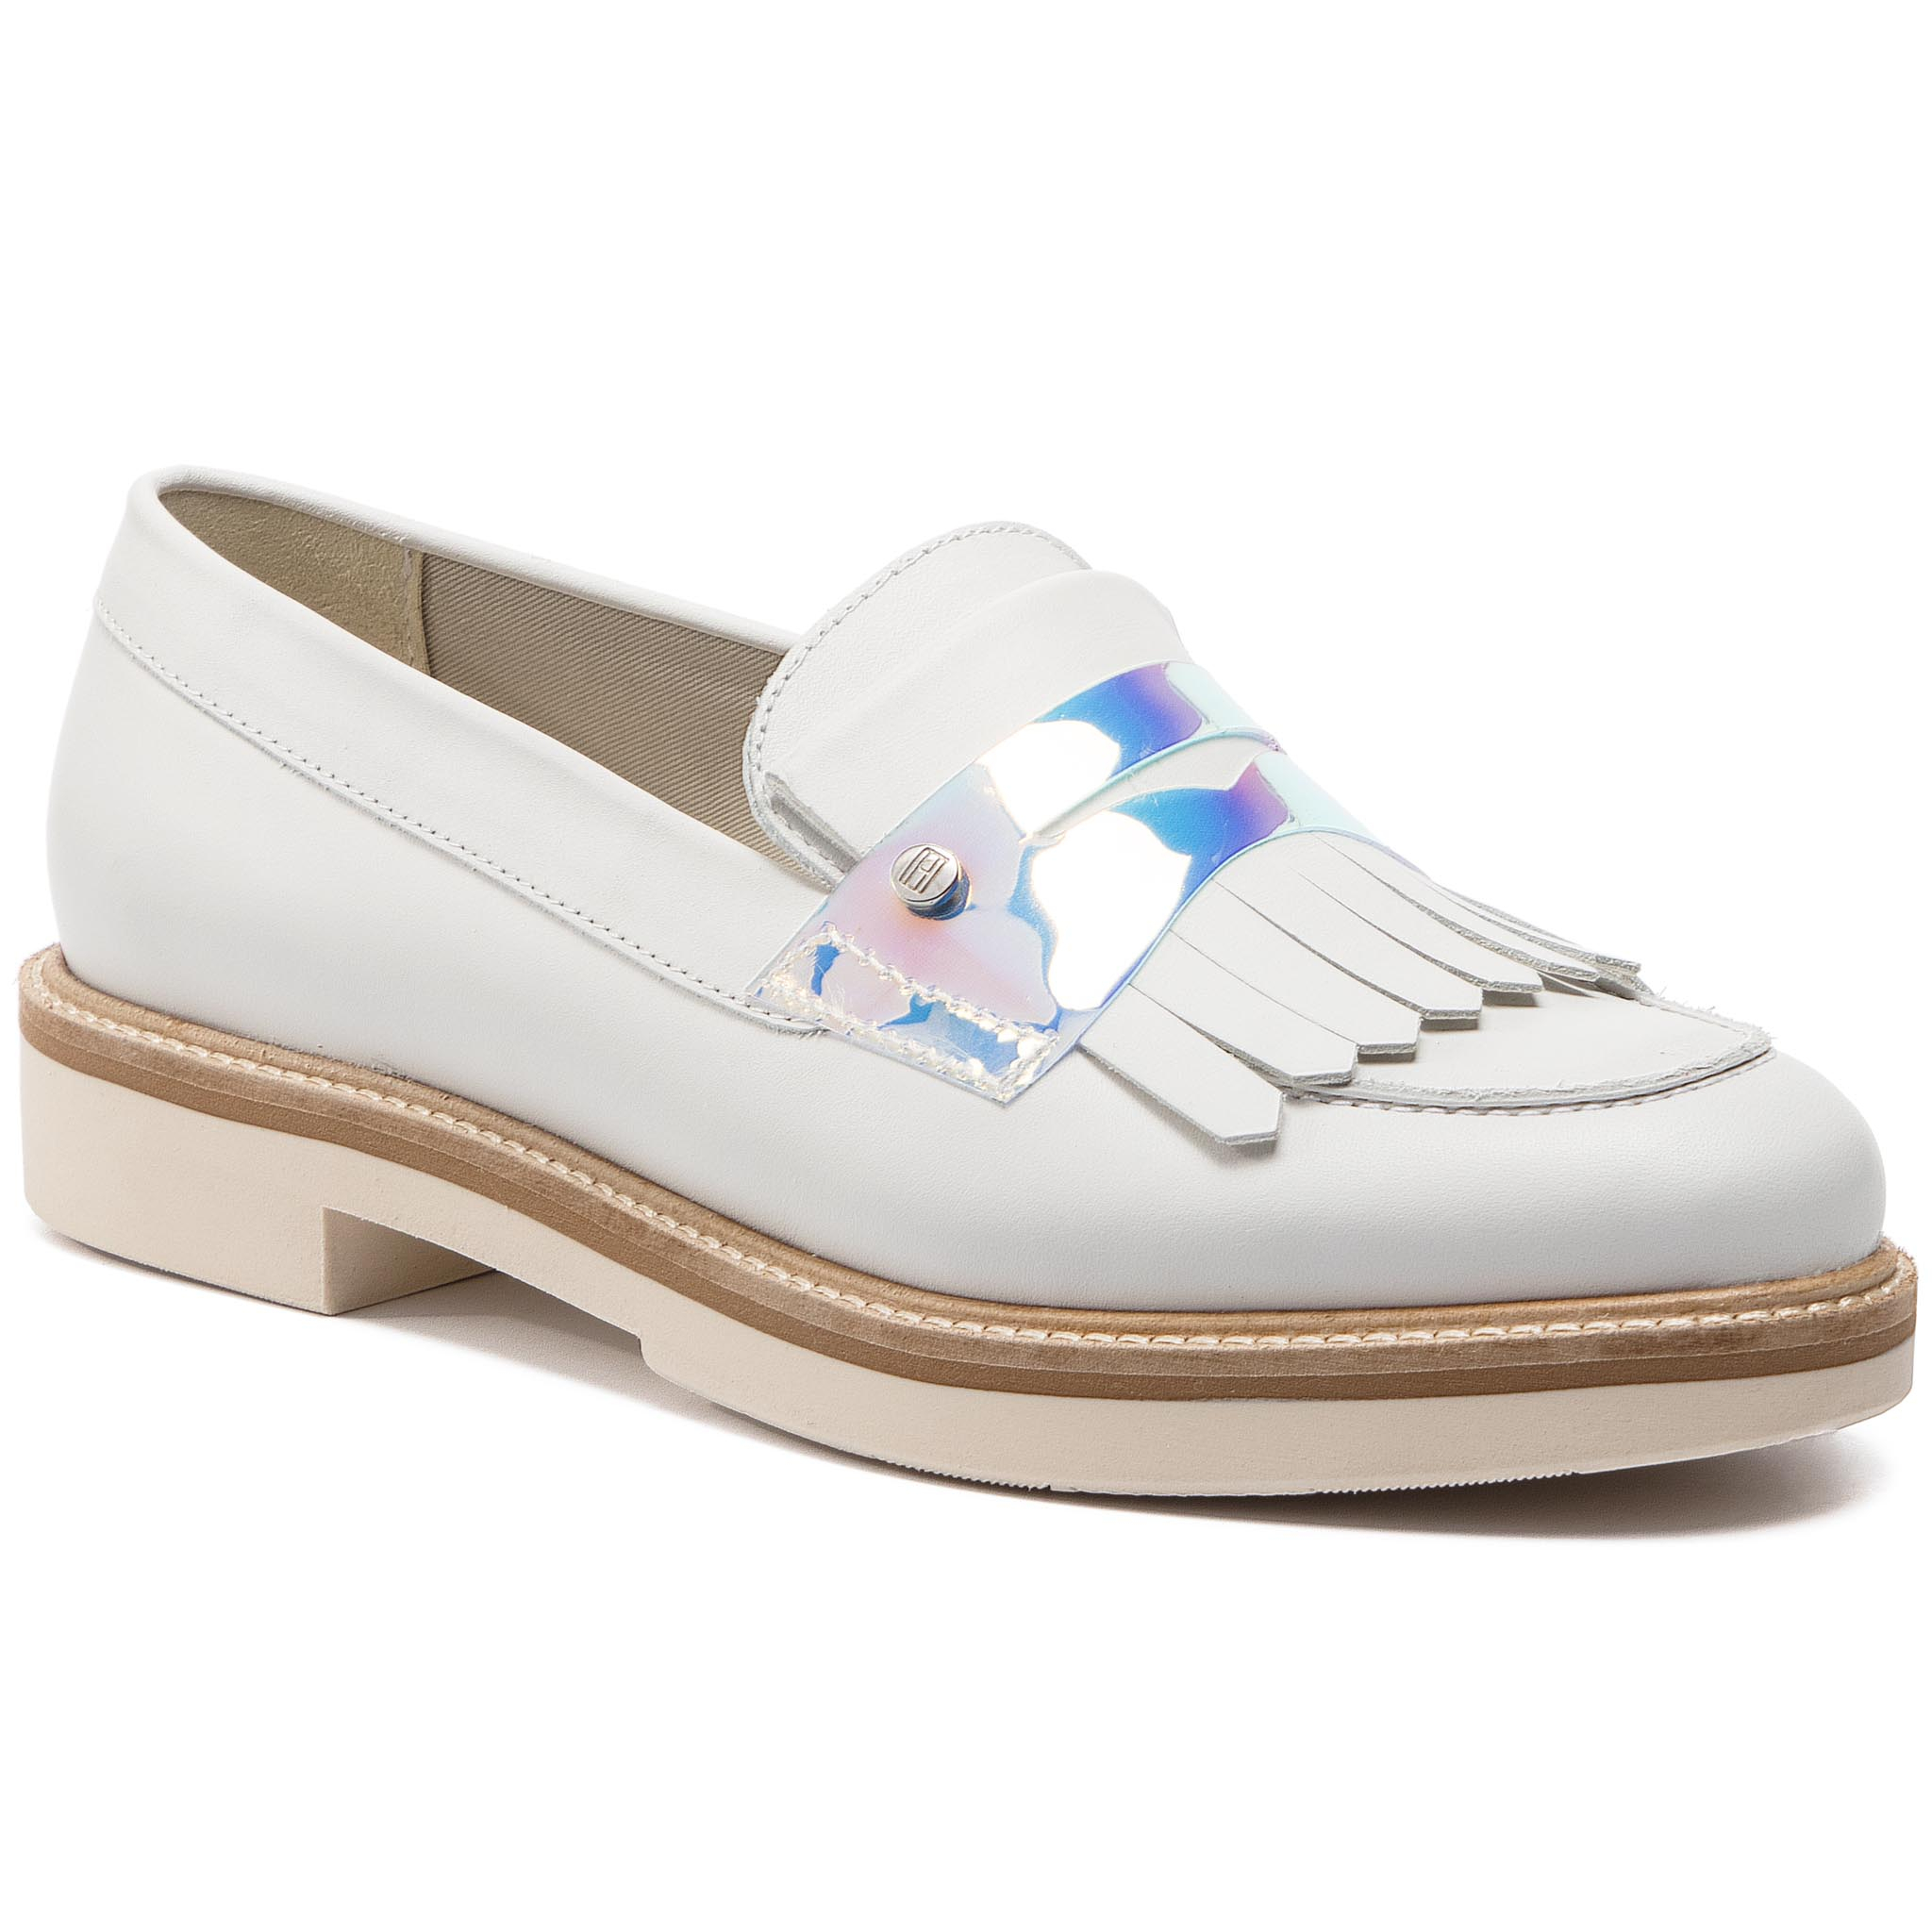 32509323dd2f1 Pantofi TOMMY HILFIGER - Iridescent Detail Loafer FW0FW03930 Whisper White  121